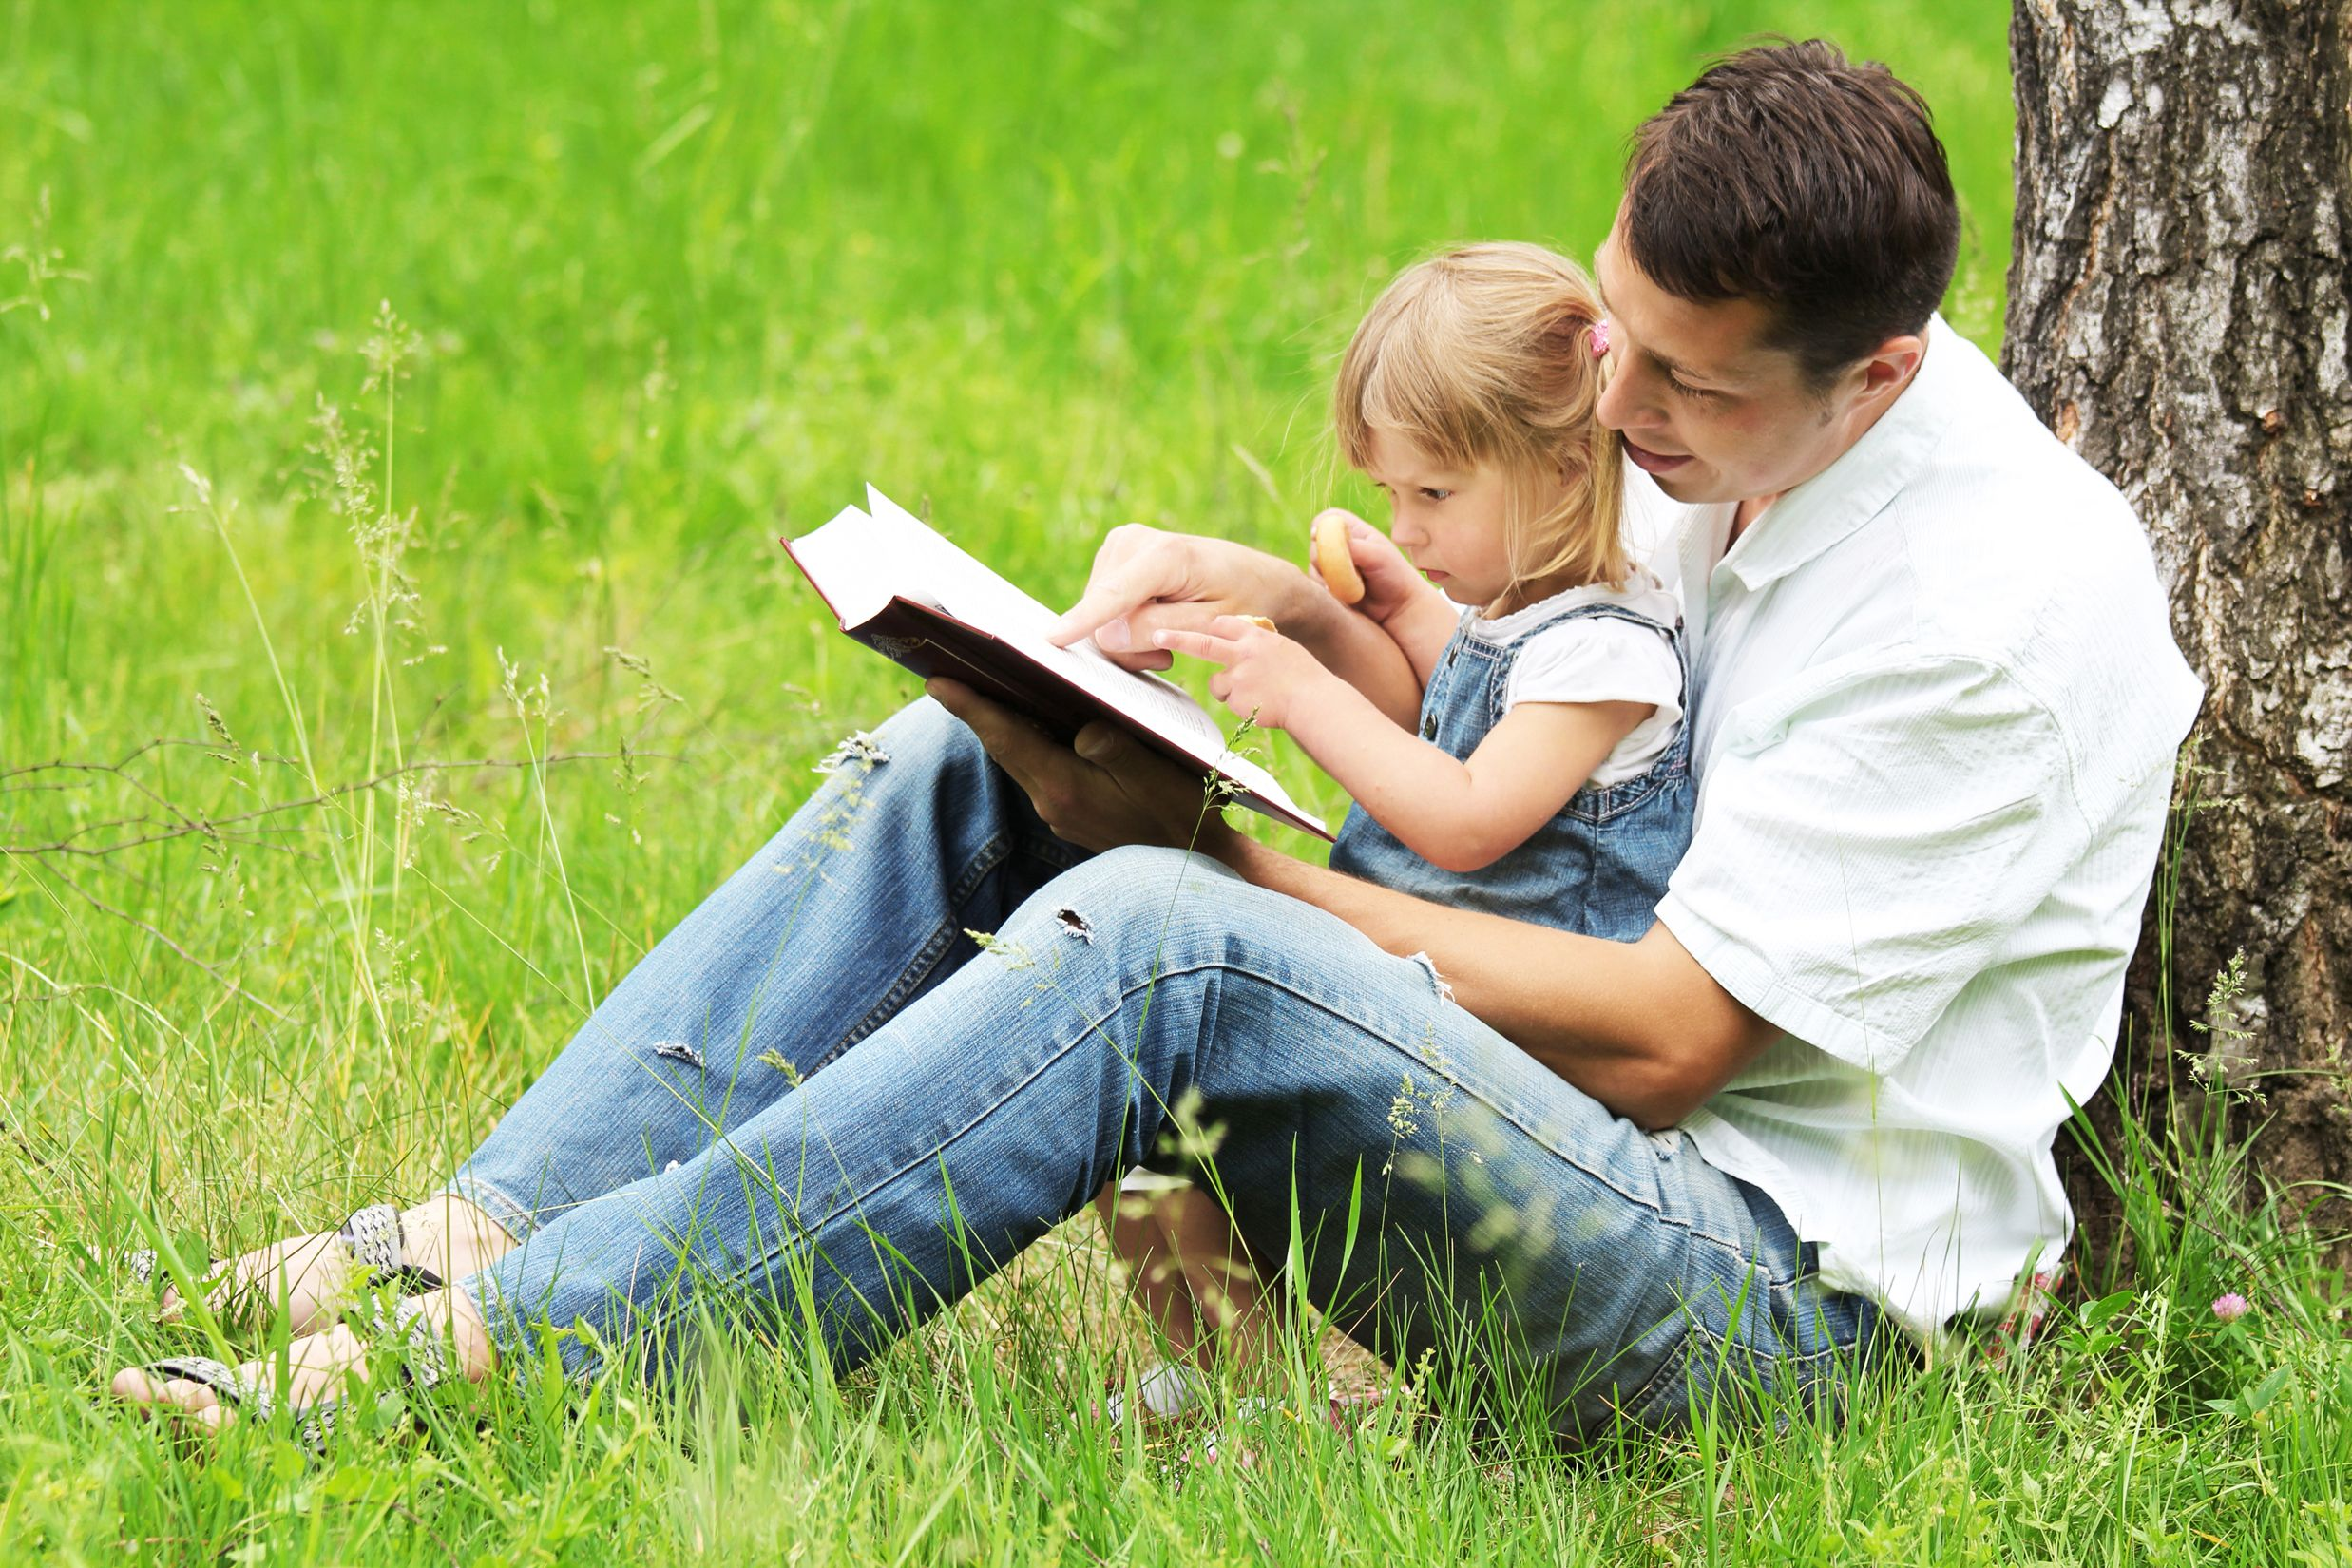 How to help your non-verbal child with autism learn reading.